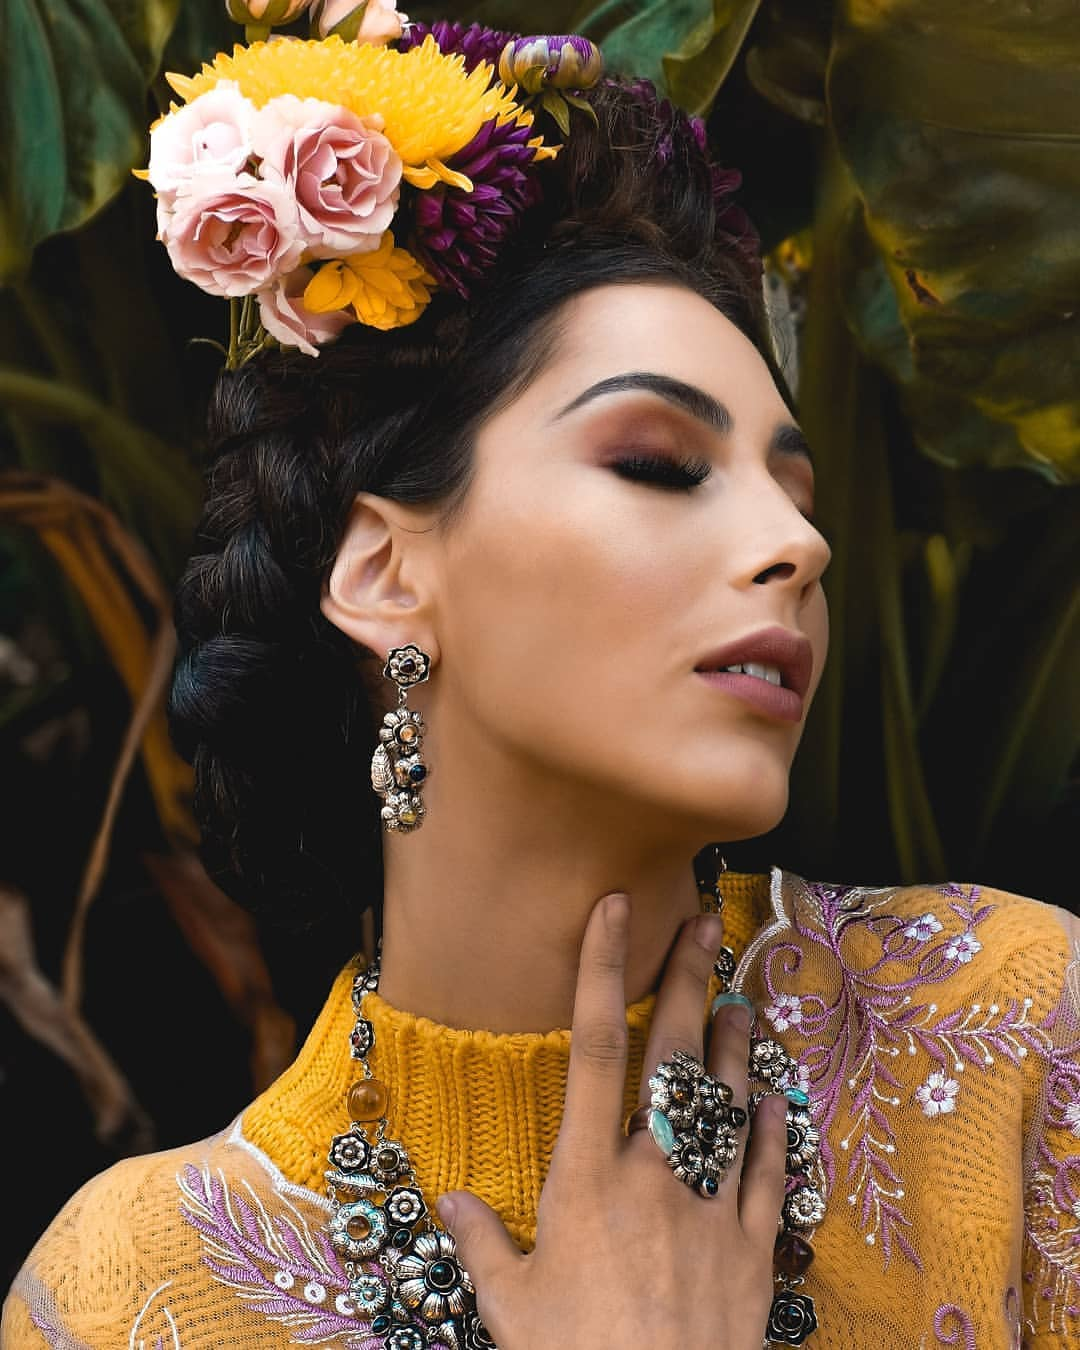 maria malo, 1st runner-up de miss grand international 2019. - Página 4 71729910